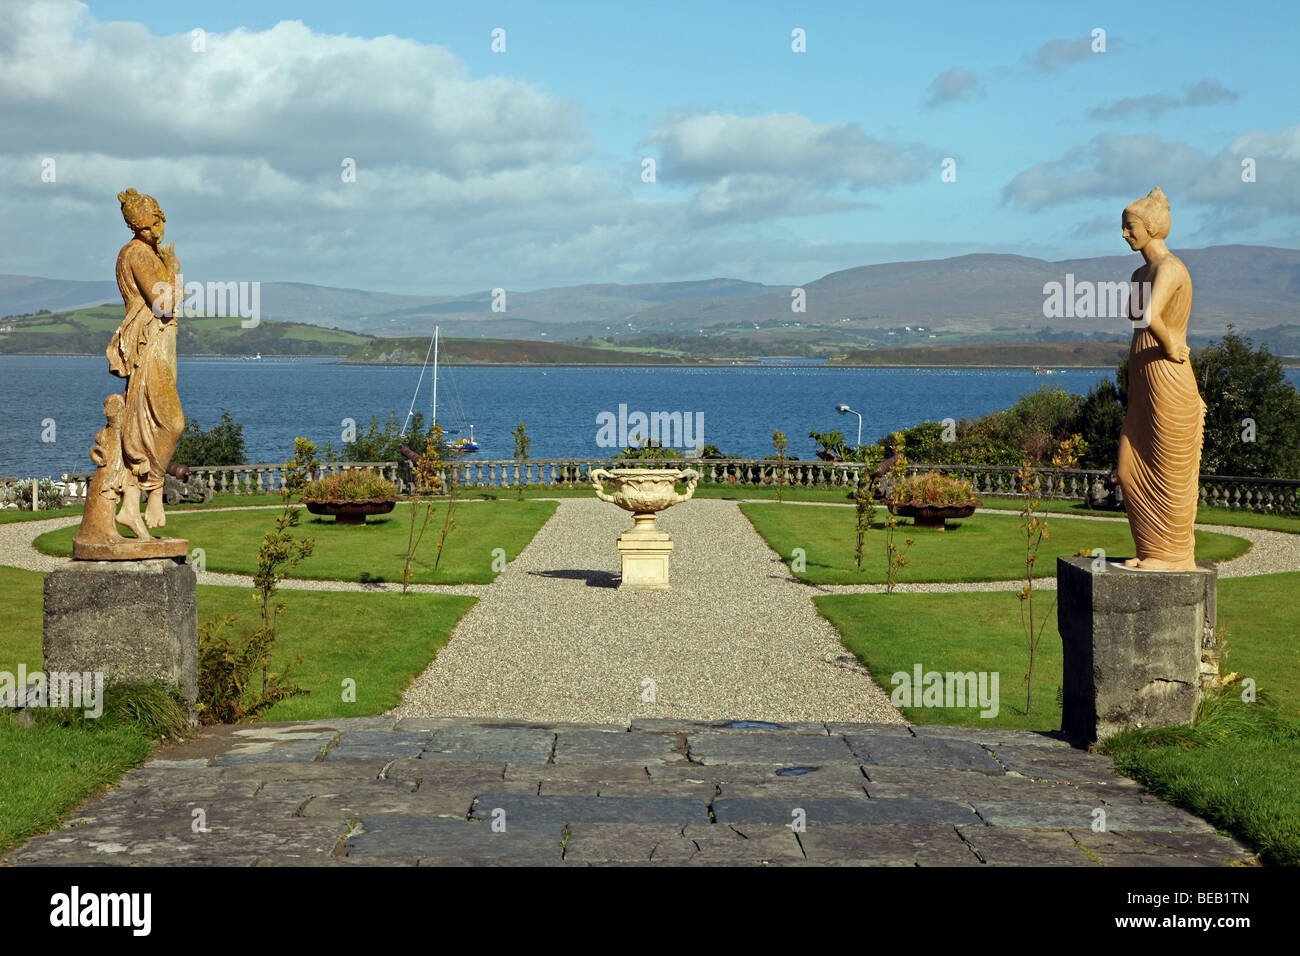 statuary in gardens of Bantry House, Irish stately home overlooking Bantry Bay - Stock Image